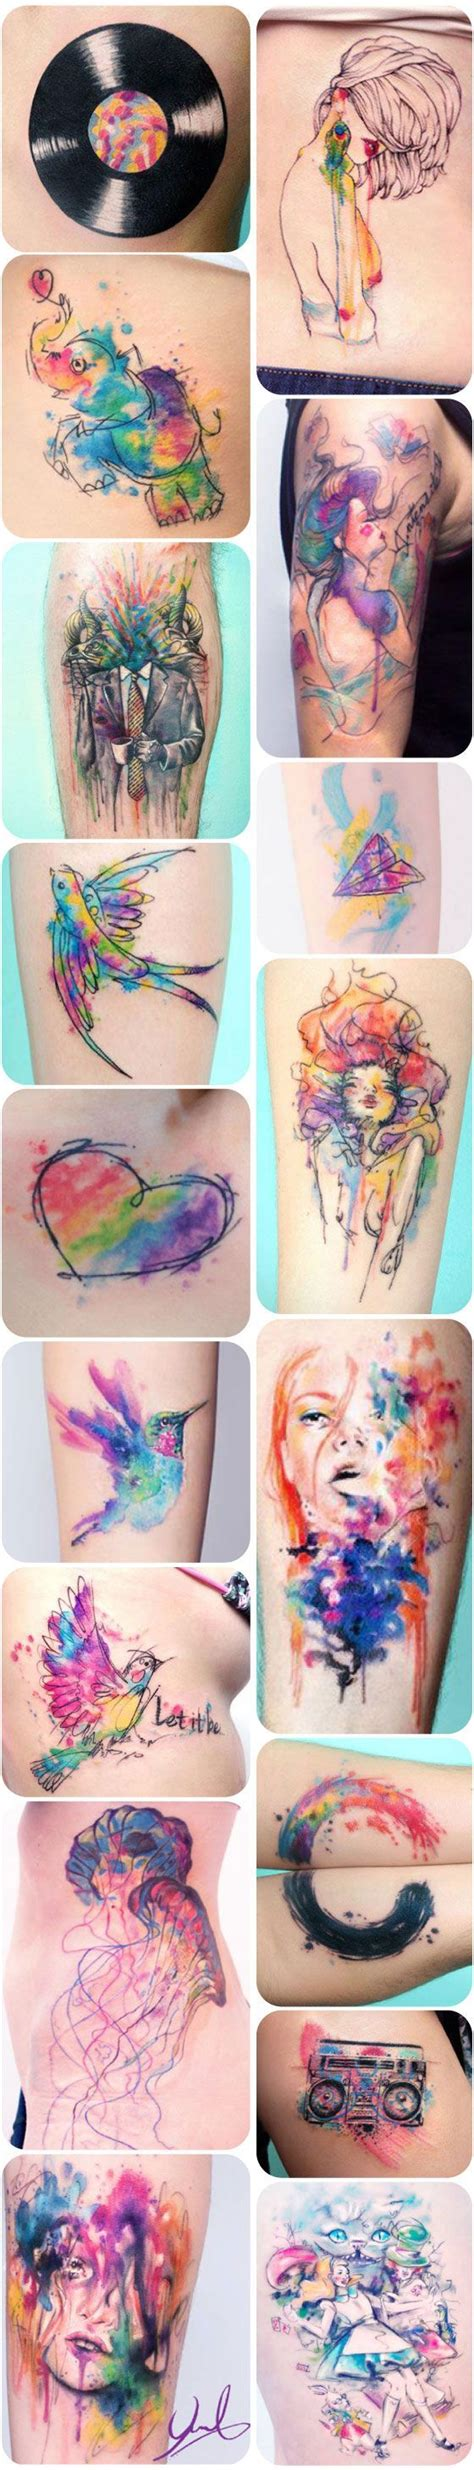 watercolor tattoos last tattoos de candelaria carballo watercolors tattoos and